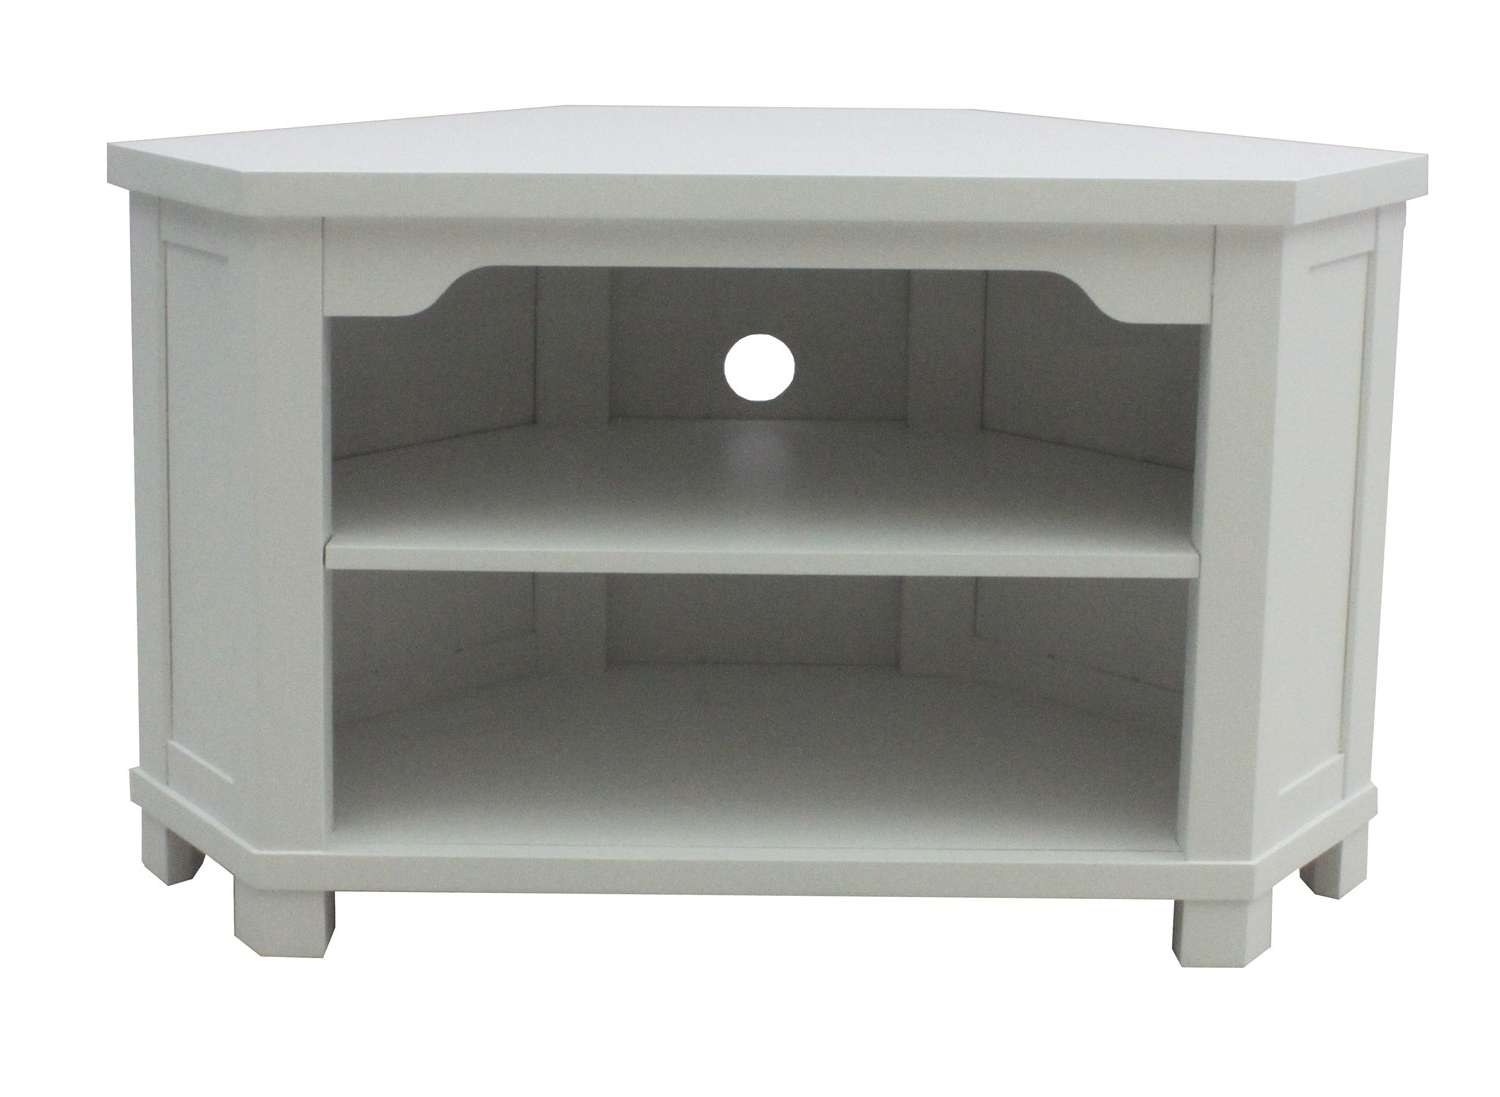 Small White Corner Tv Stand Stands Tall Standor Bedroom Trends Pertaining To White Corner Tv Cabinets (View 11 of 20)